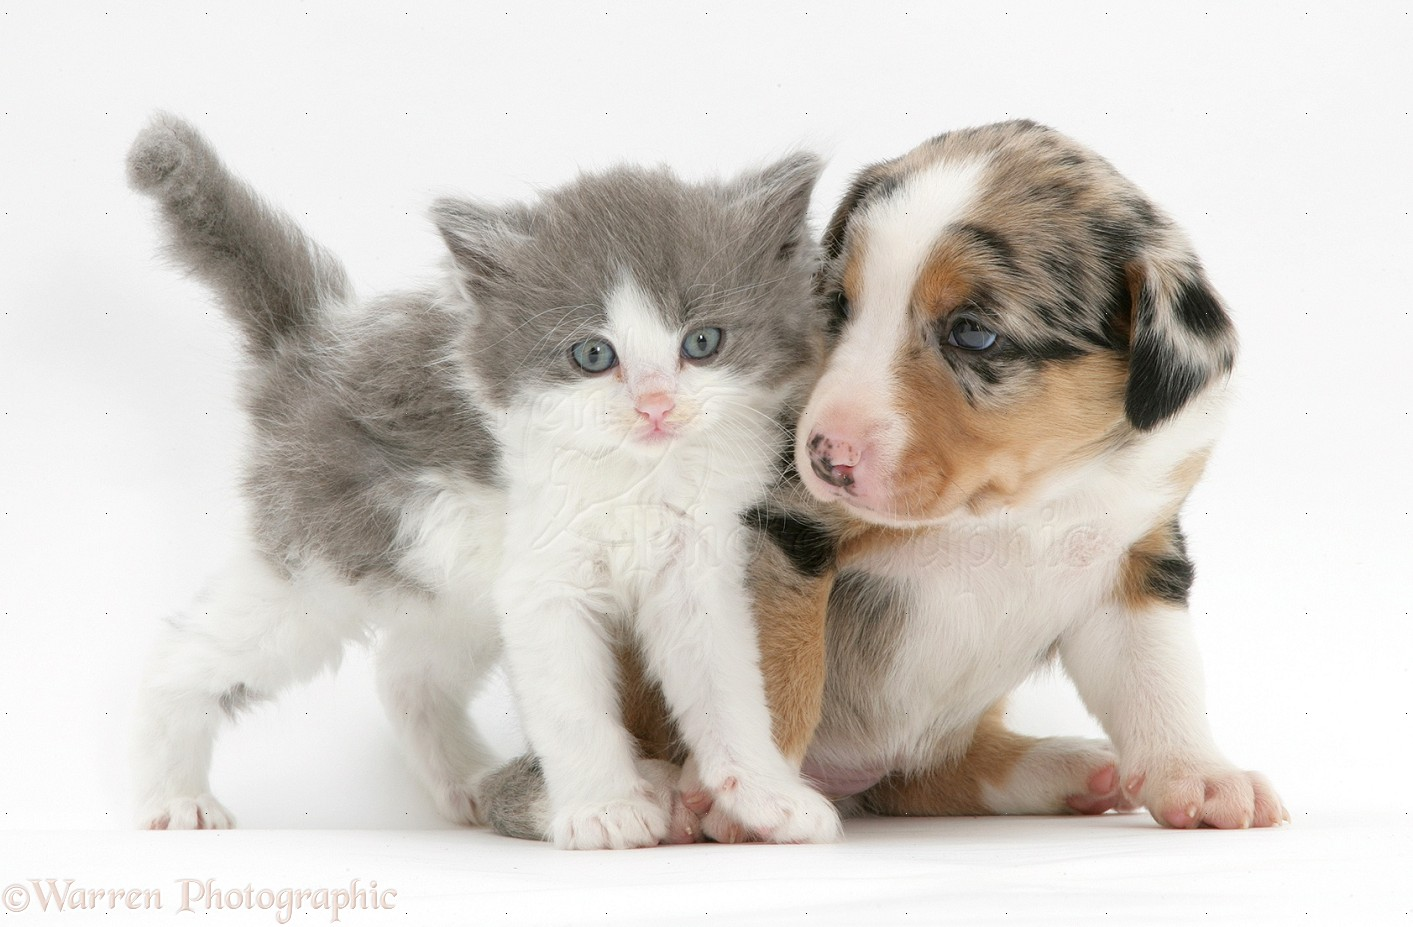 Pets: Border Collie pup and kitten photo - WP10461